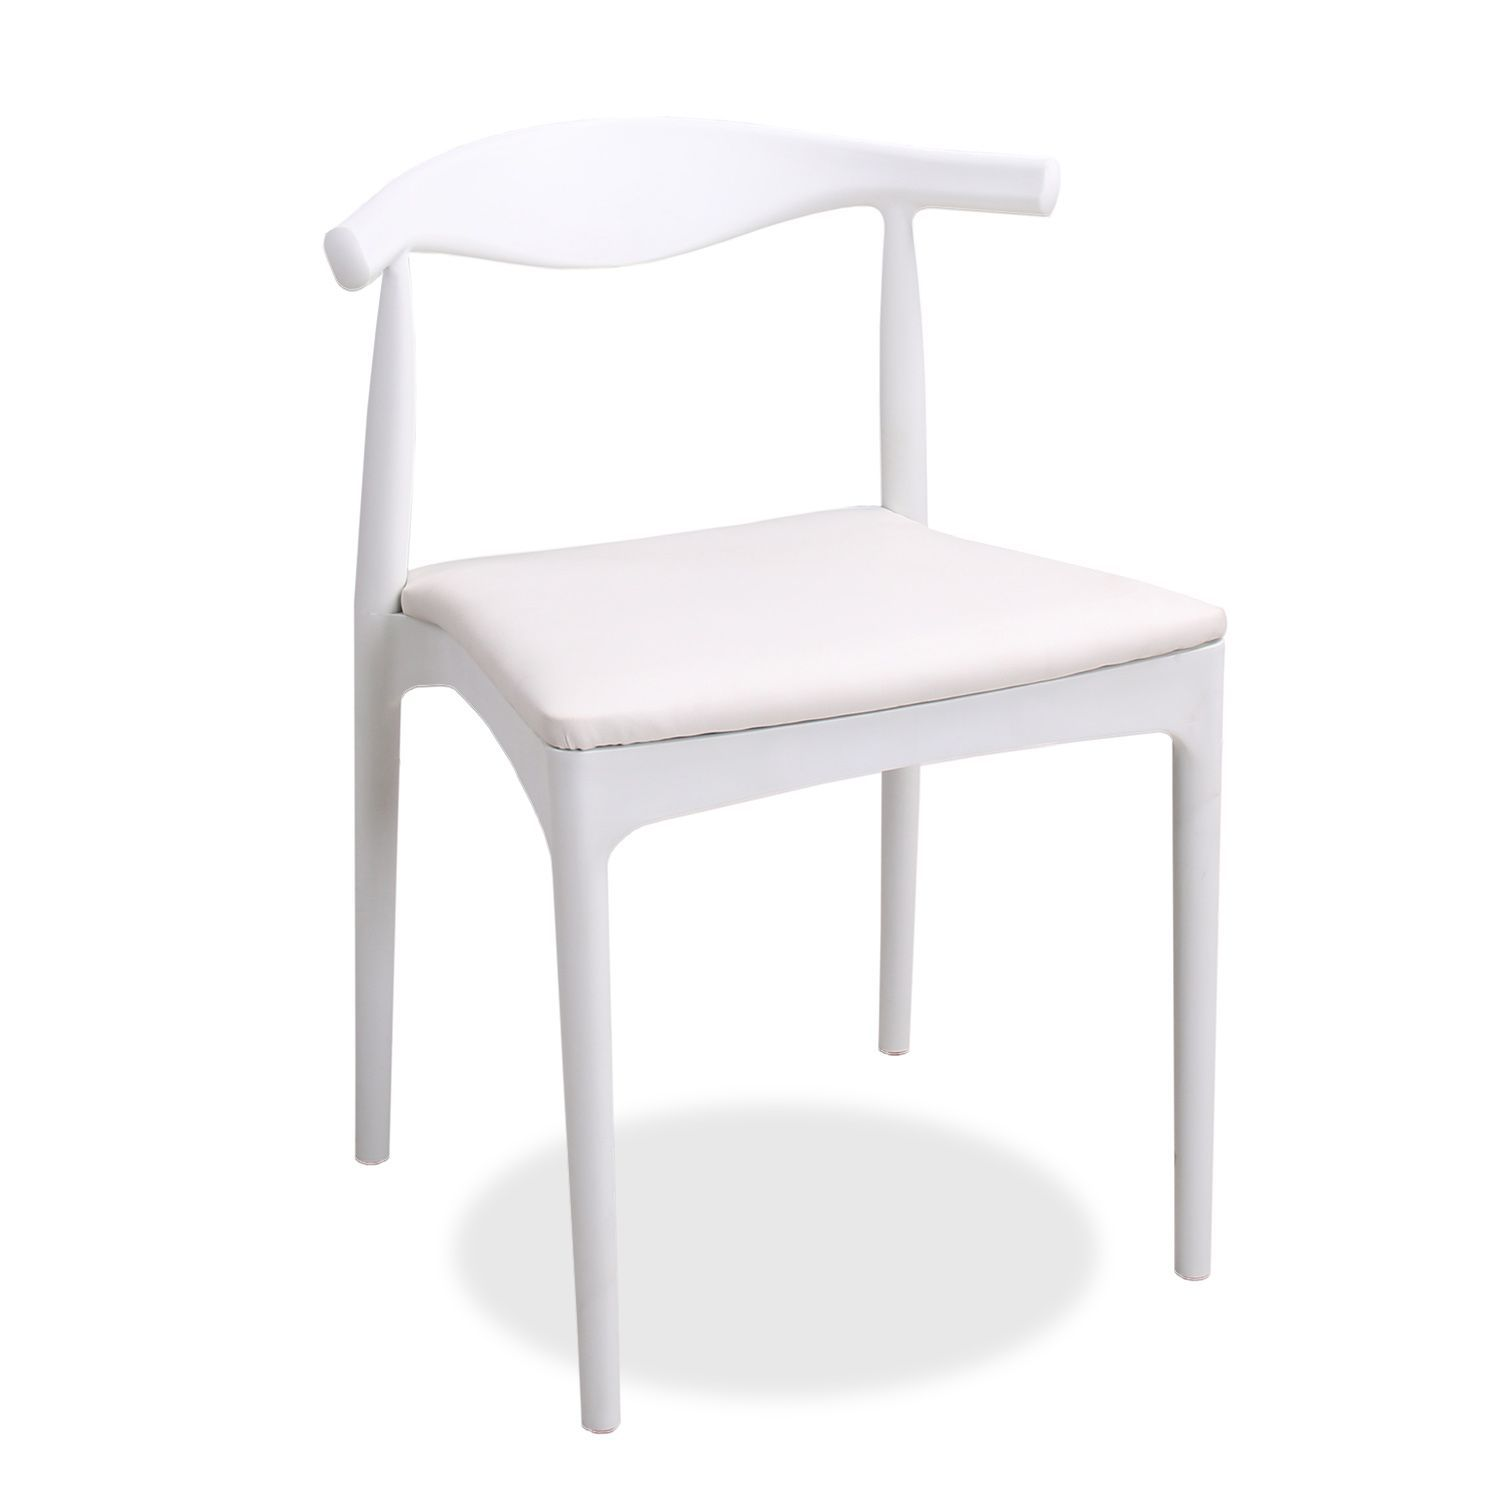 Peachy Dan Chair Polypropylene Inspiration Elbow Chair From Hans Caraccident5 Cool Chair Designs And Ideas Caraccident5Info